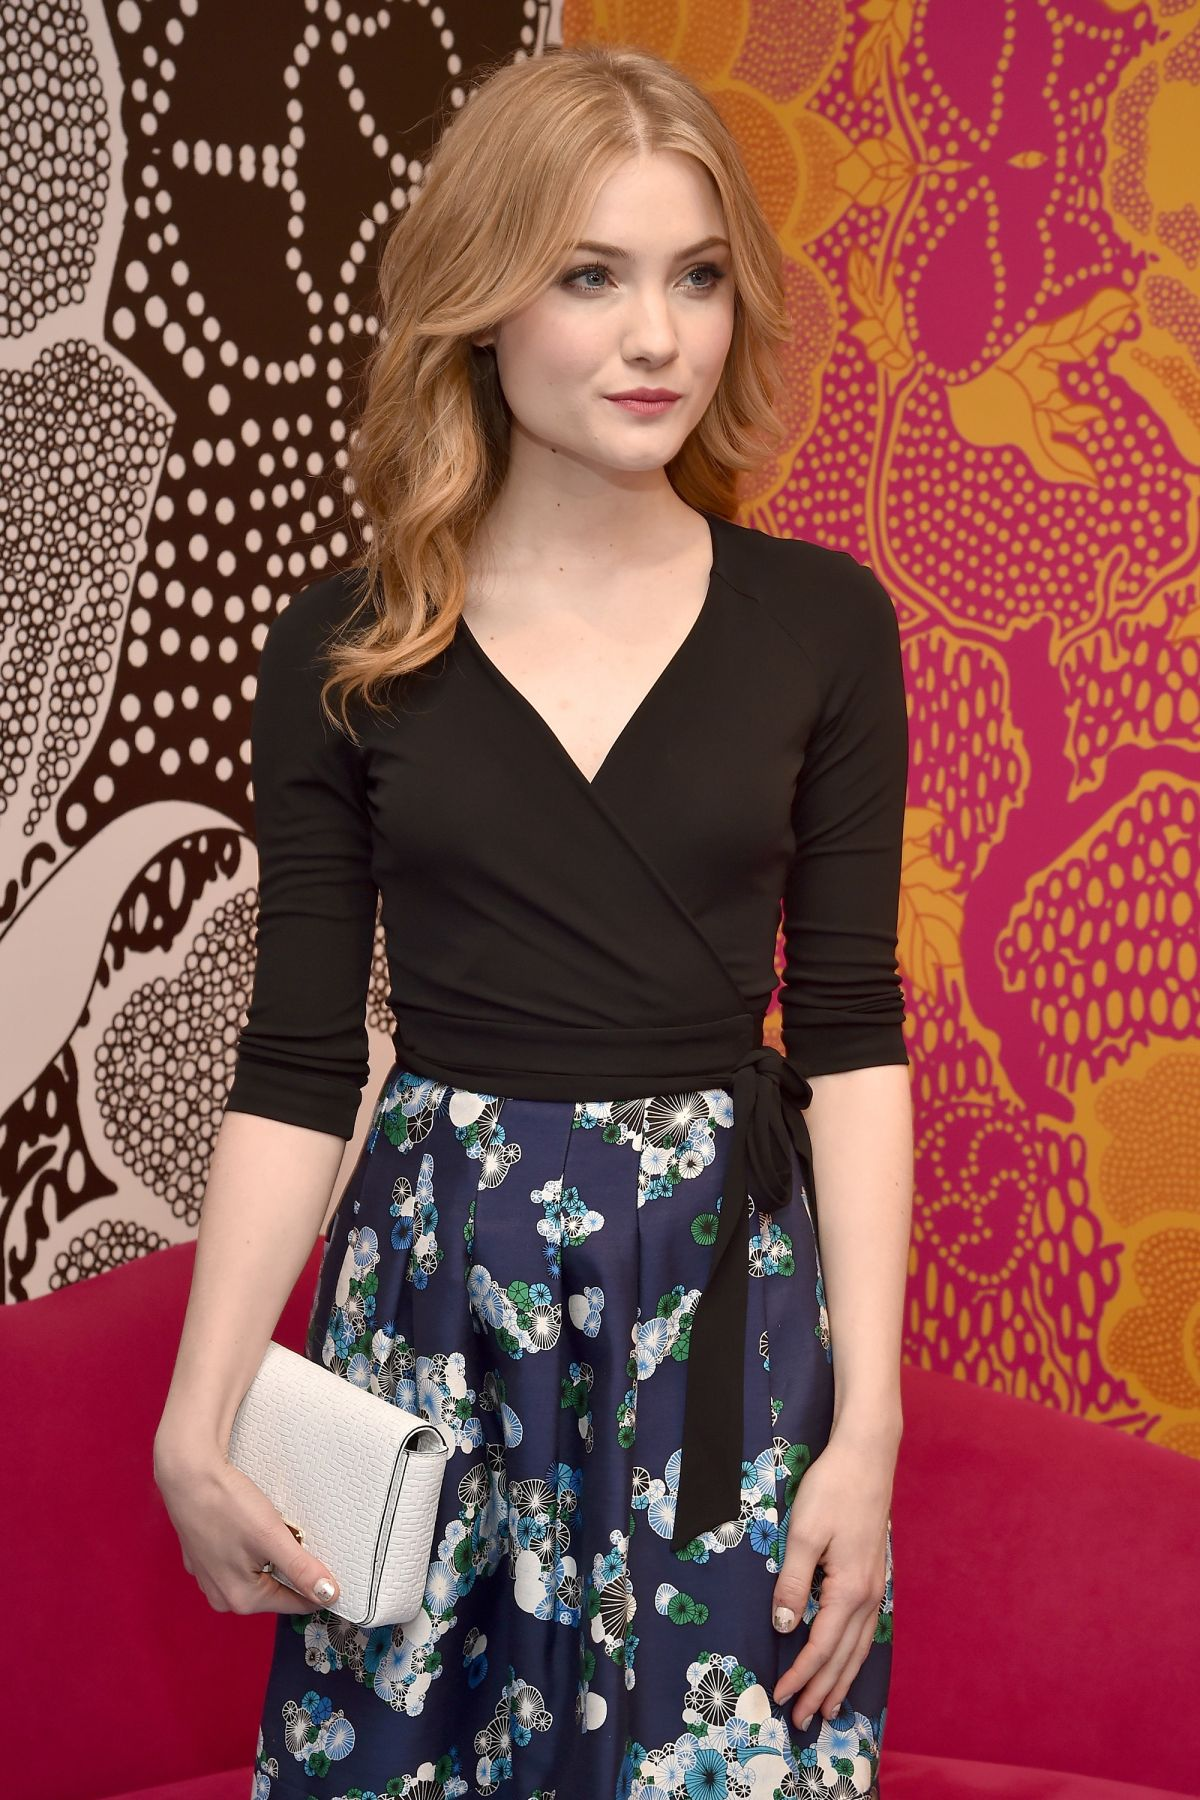 SKYLER SAMUELS at Diane Von Furstenberg Fall 2016 Fashion Show at NYFW 02/14/2016